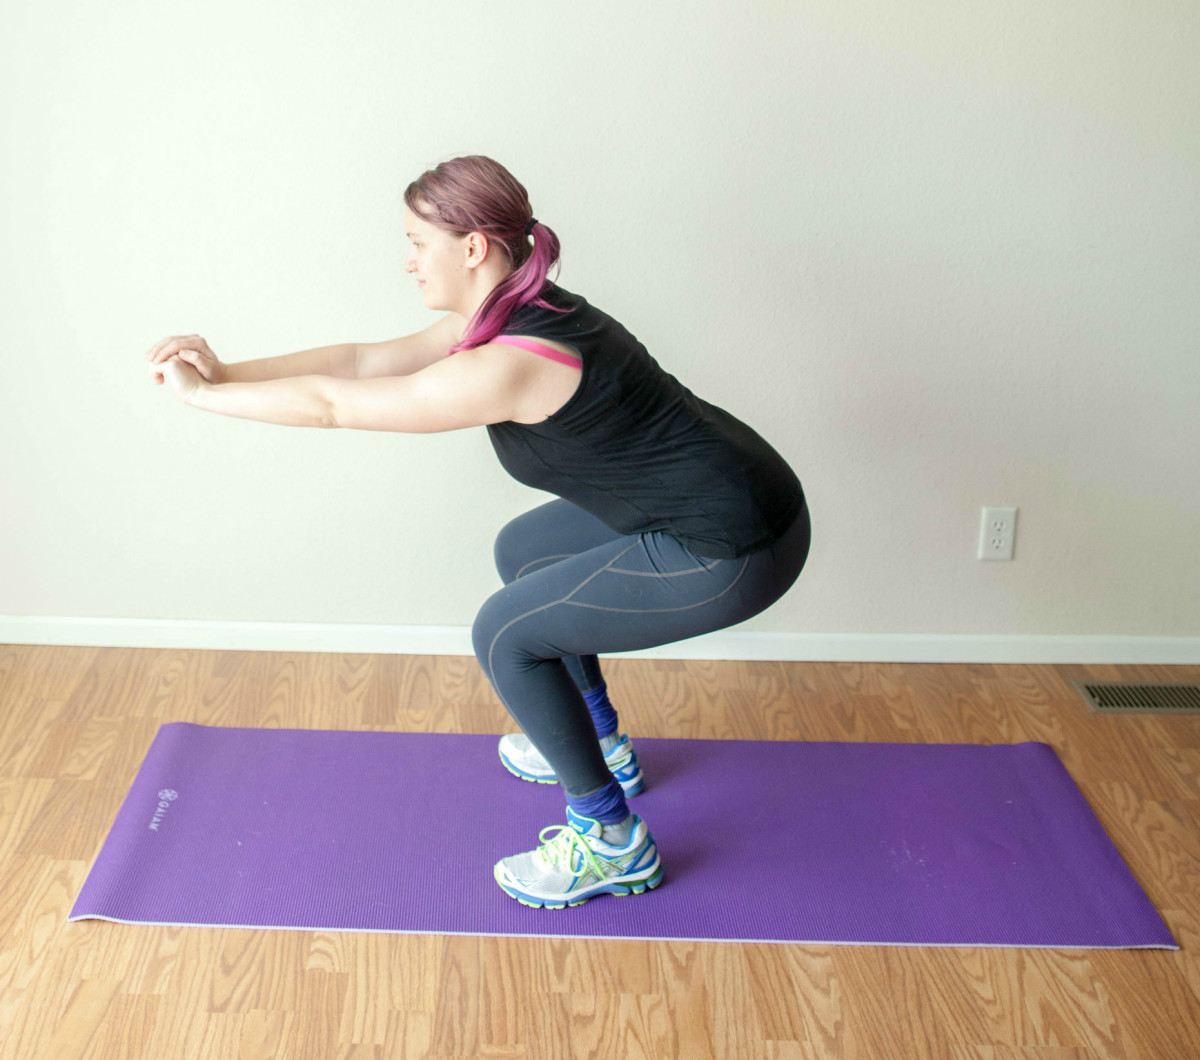 Start with your feet shoulder's distance apart and bend your knees. Keep your back straight!